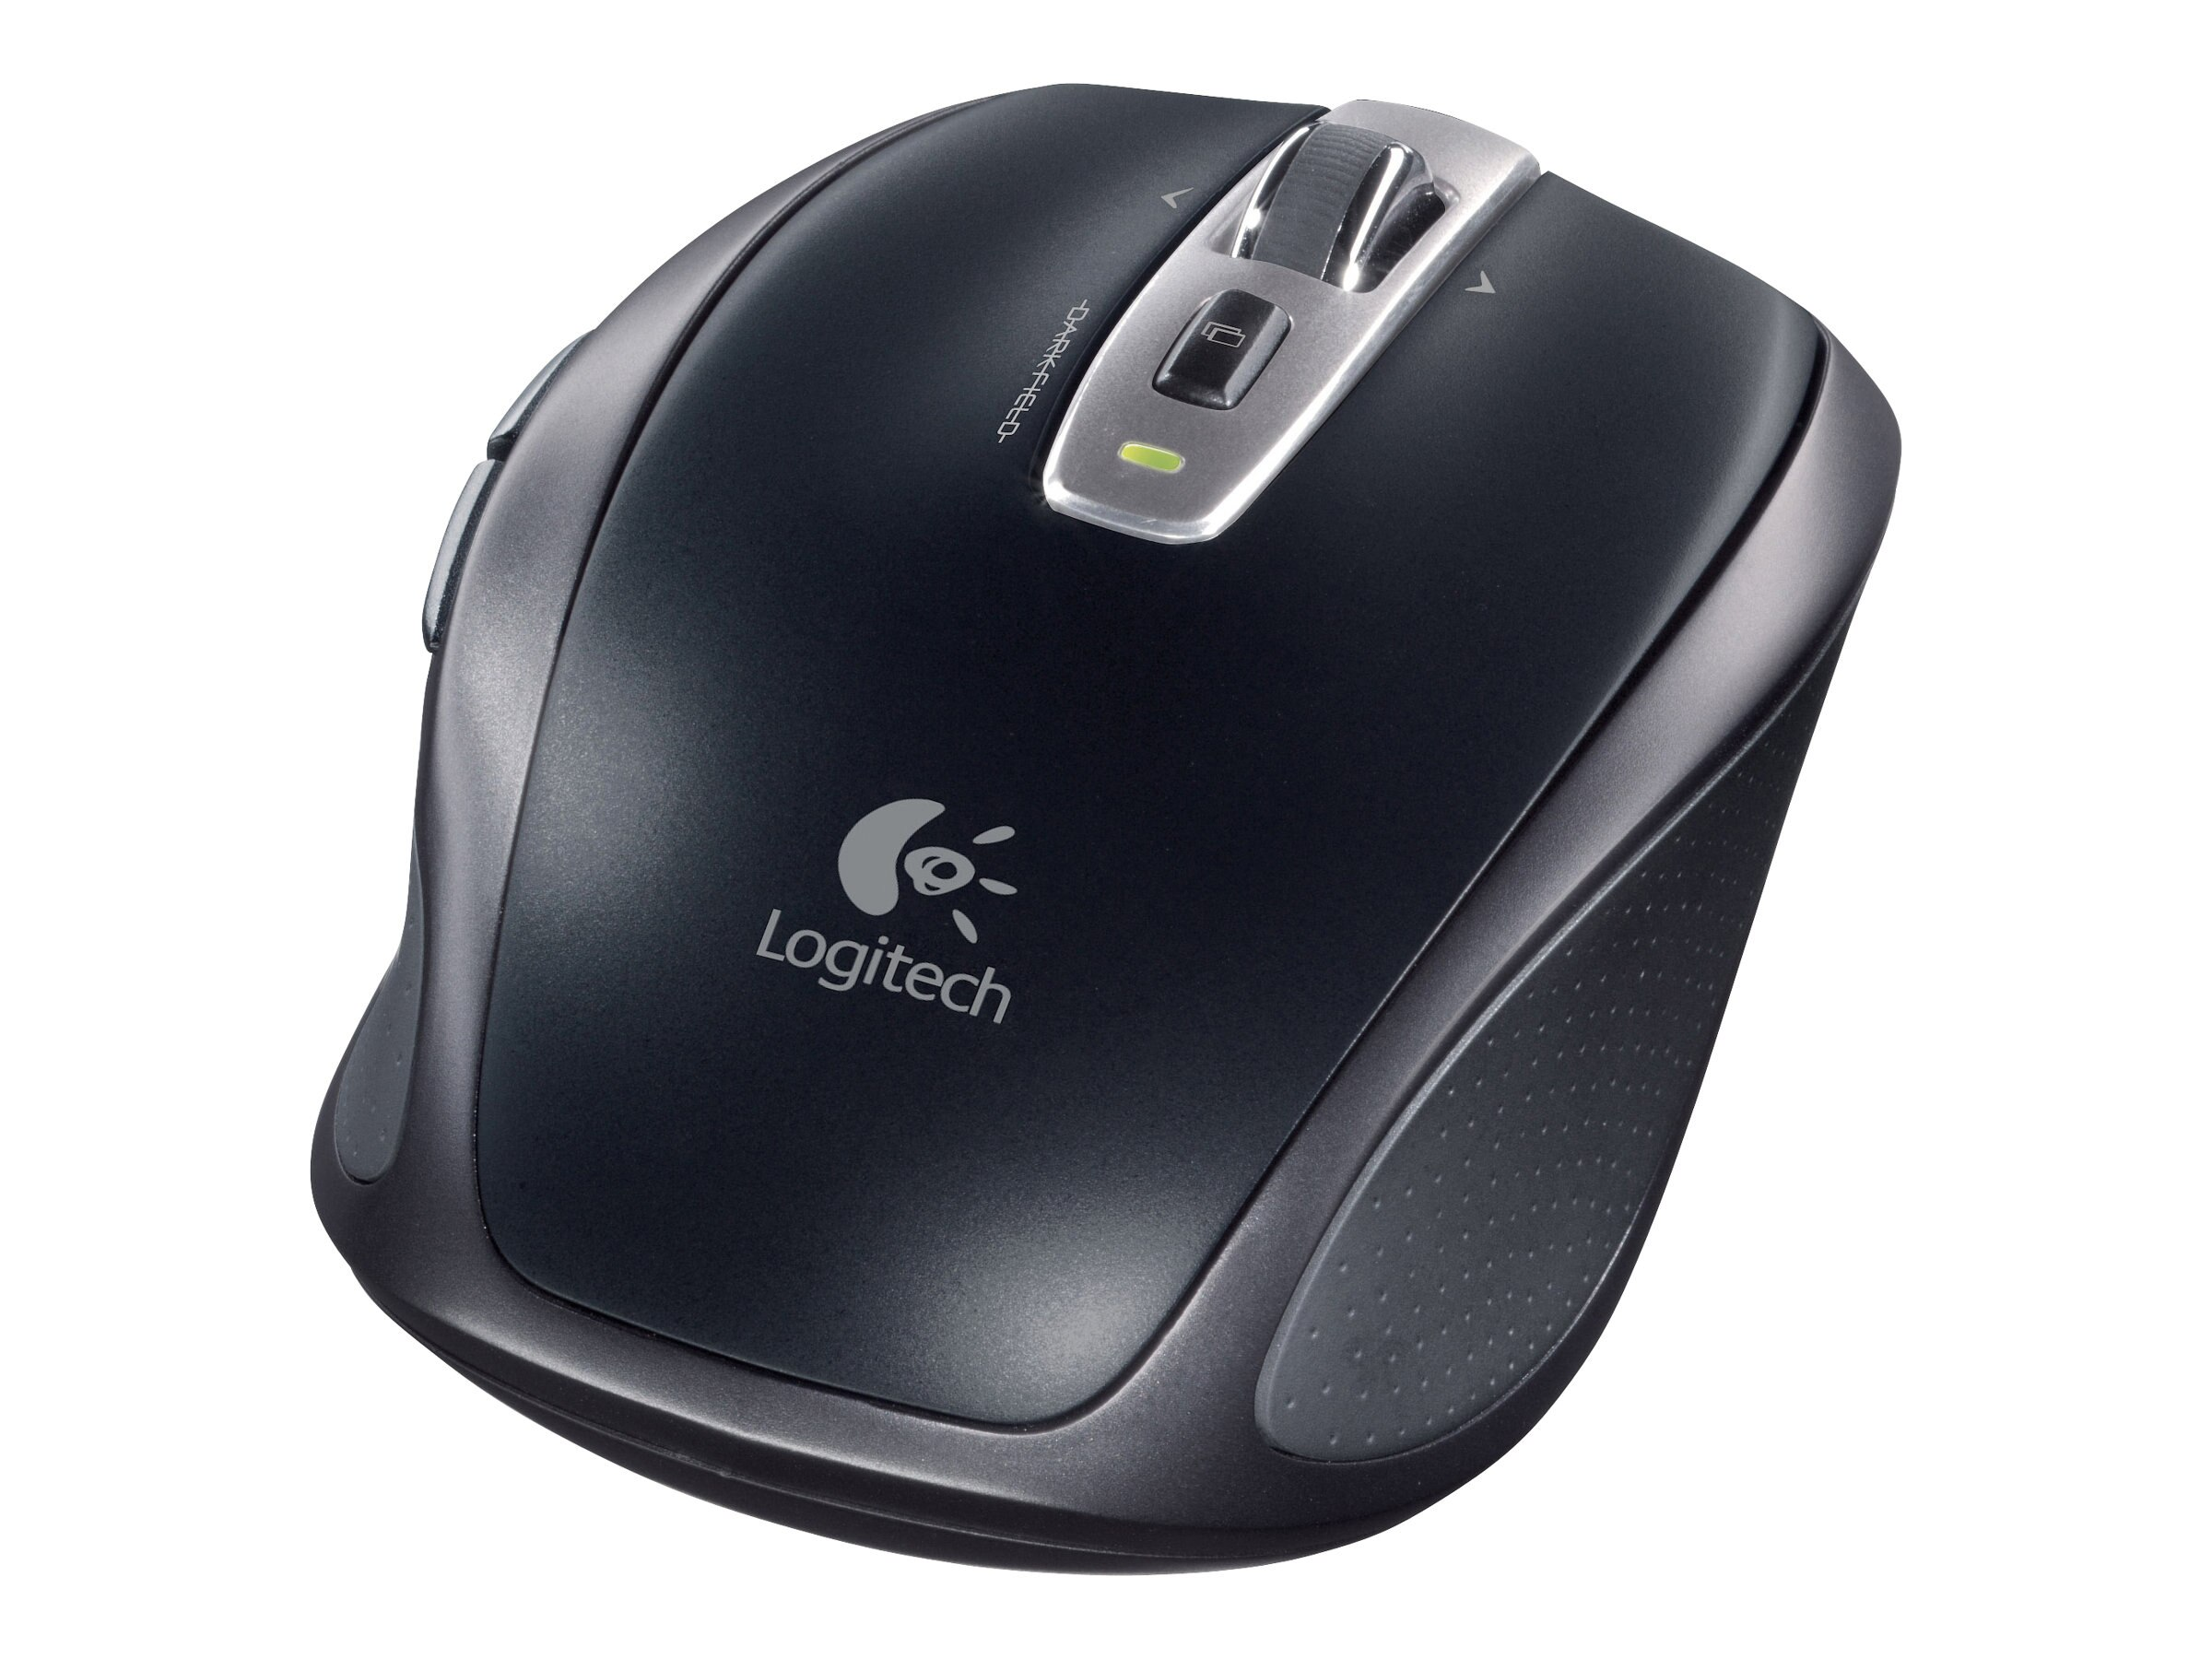 Logitech Anywhere Mouse MX, 2.4GHz Unifying Receiver